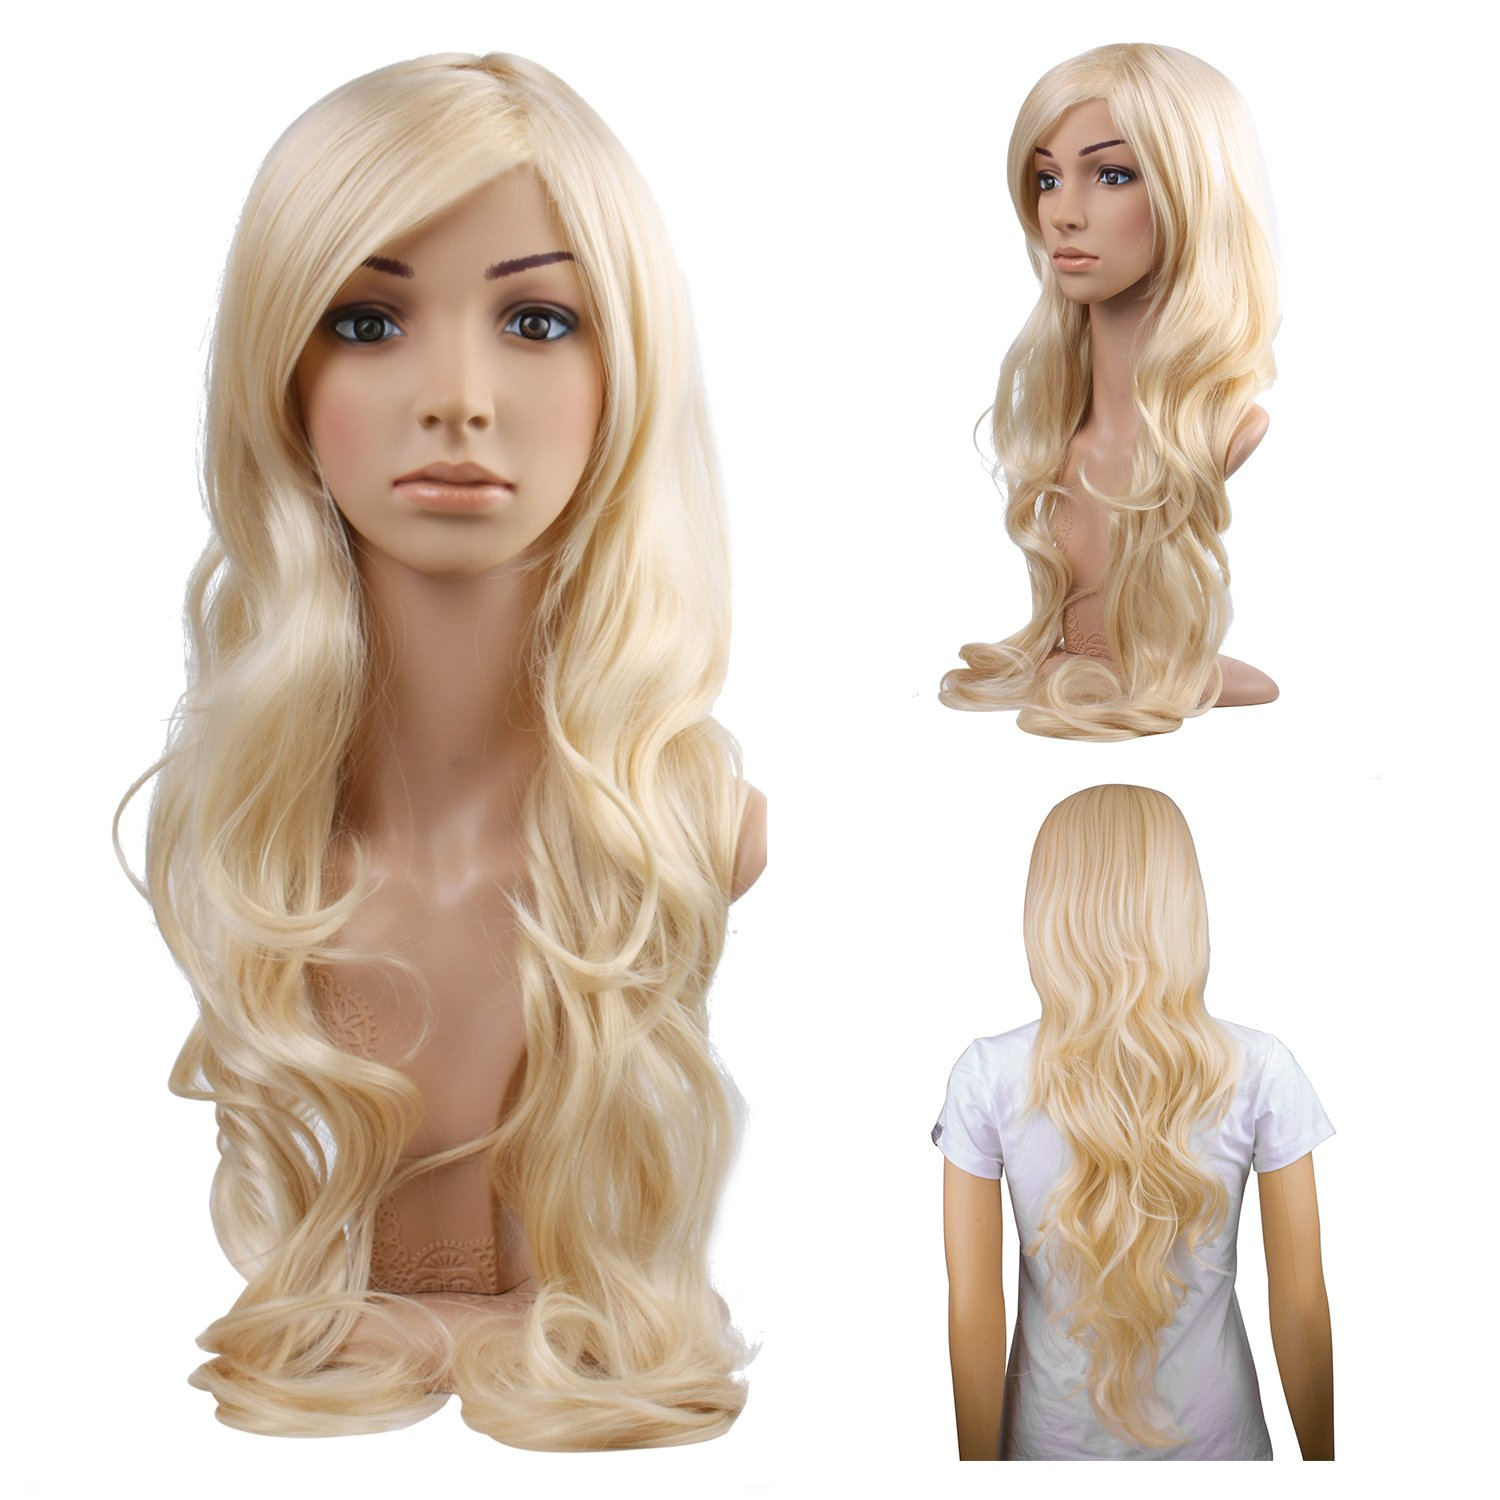 MelodySusie Blonde Long Curly Wavy Wig for Women Girl, 34 Inches Synthetic Hair Replacements Wigs with Side Part Bangs Daily Halloween Cosplay Costume Wig with Free Wig Cap,Light Blonde by MelodySusie